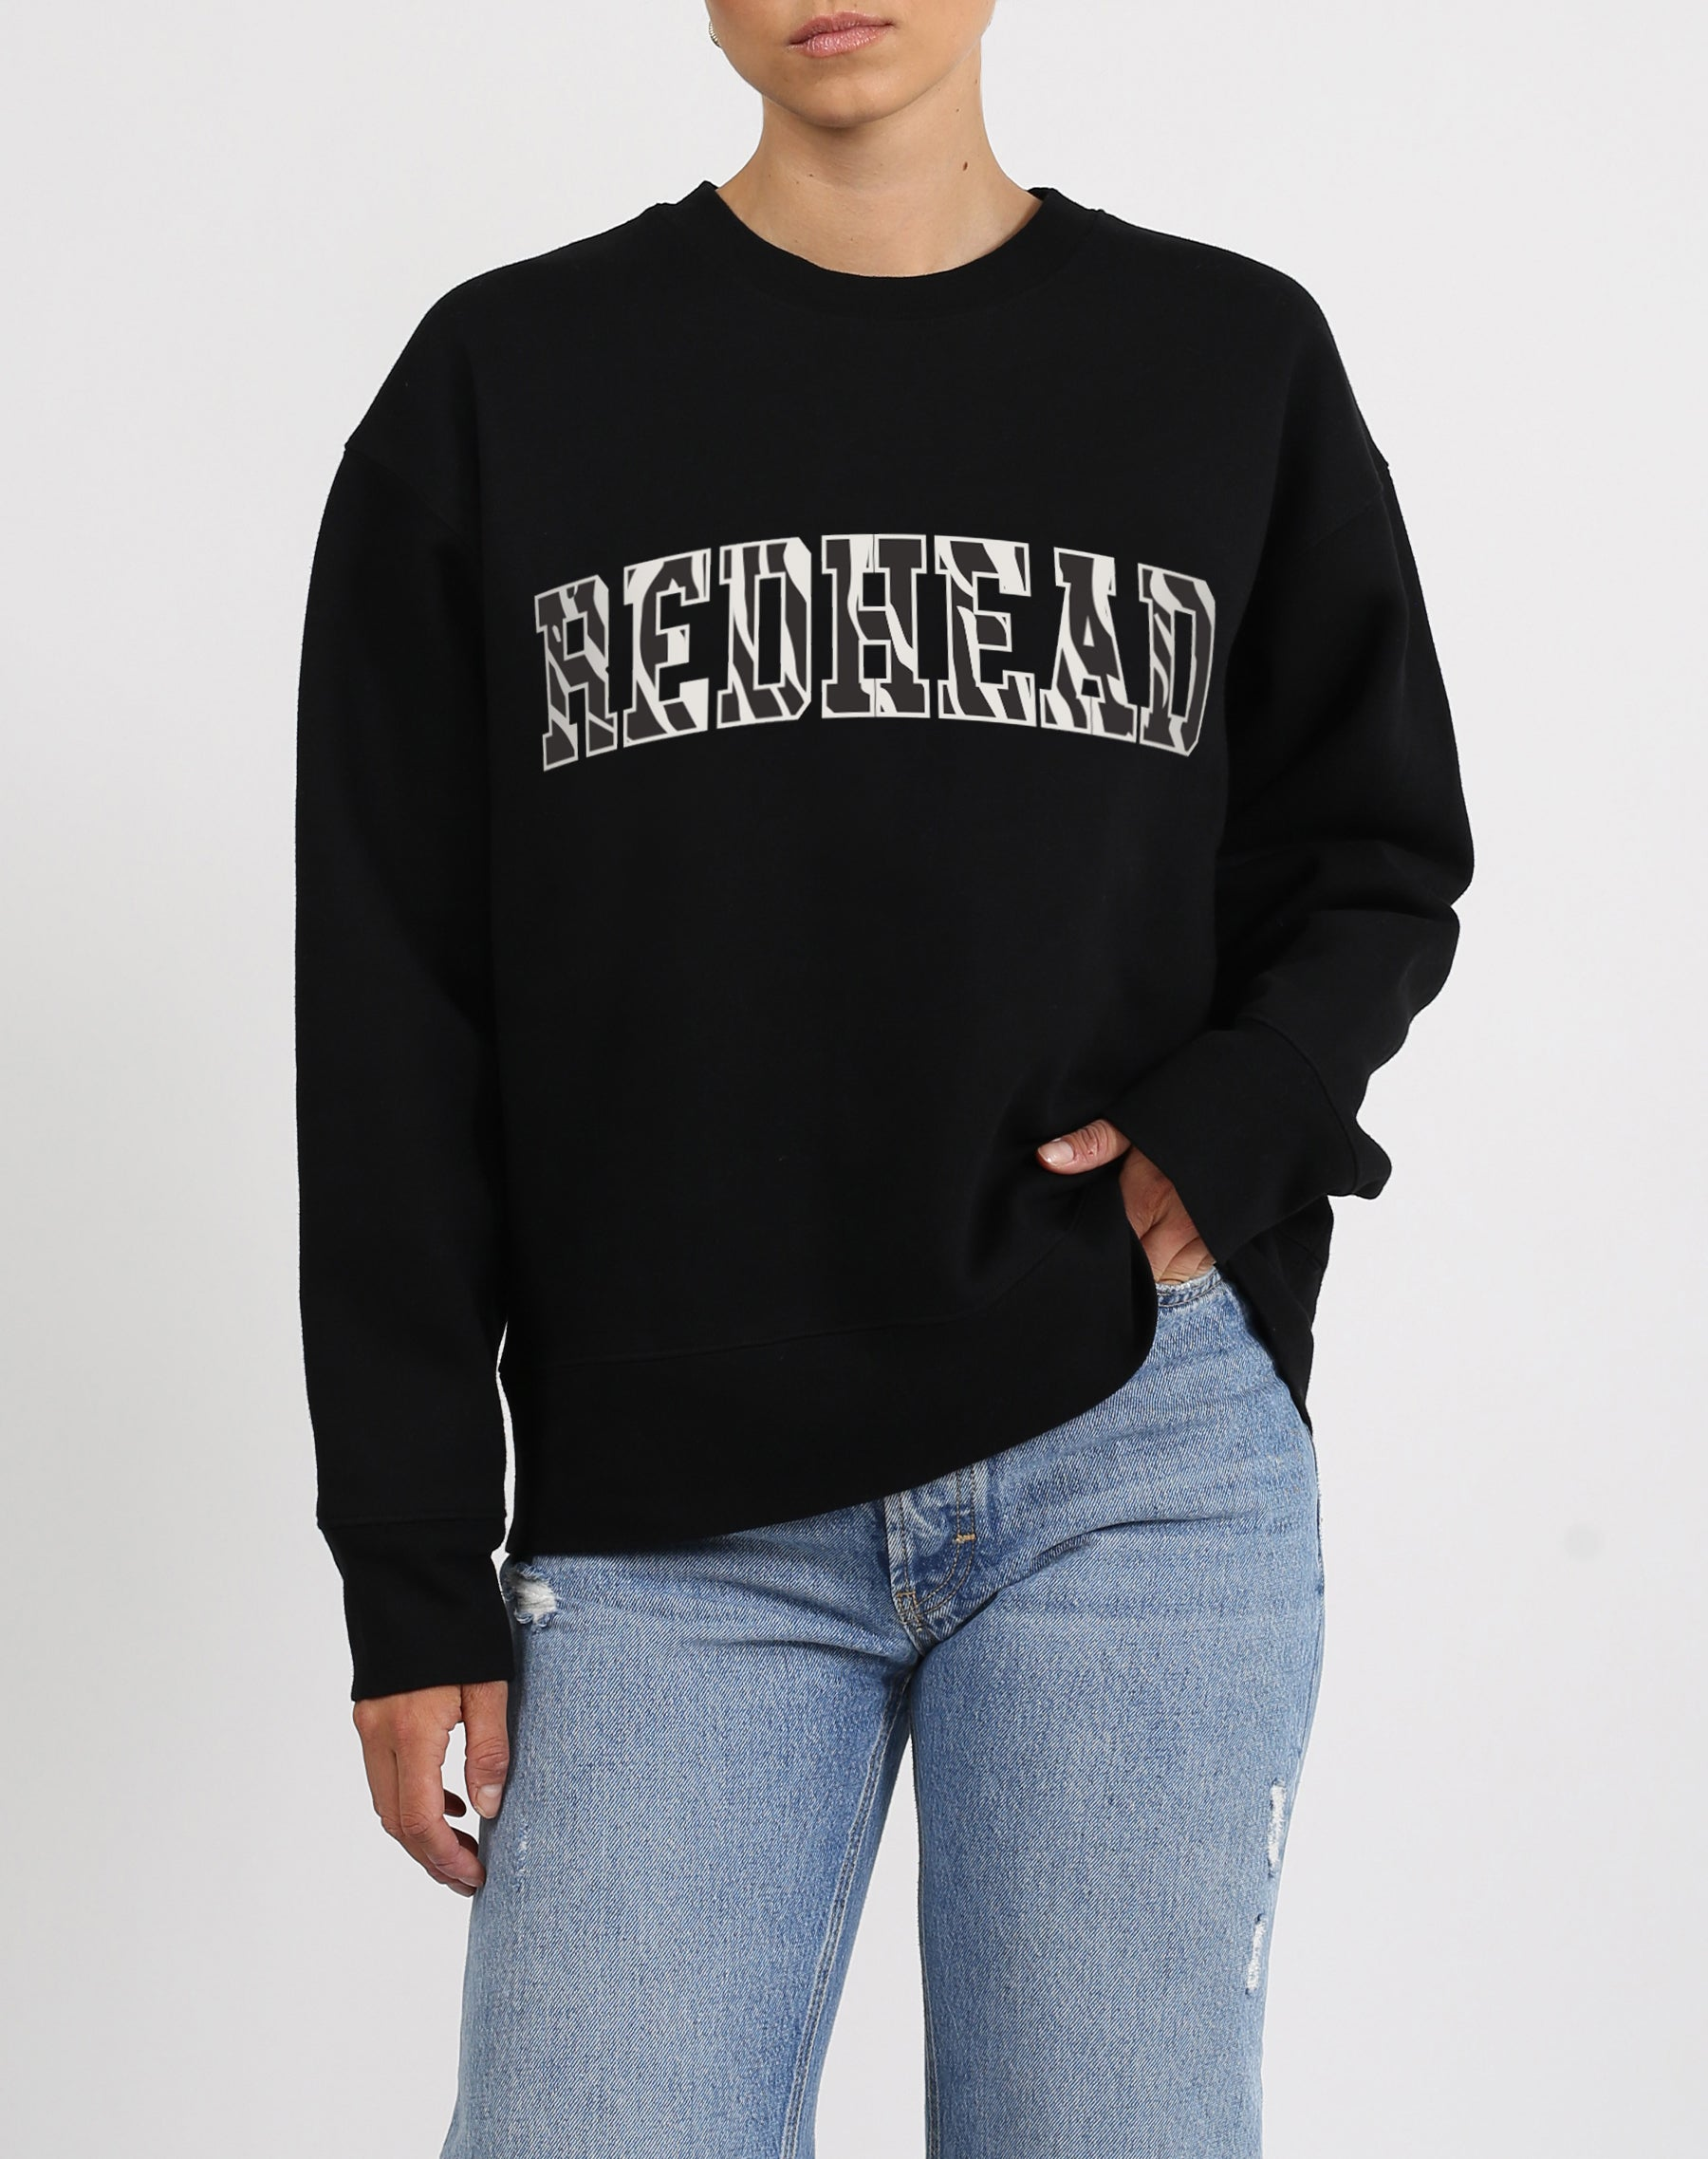 This is an image a model wearing the Redhead Zebra Varsity Step Sister Crew Neck Sweatshirt in Black by Brunette the Label.